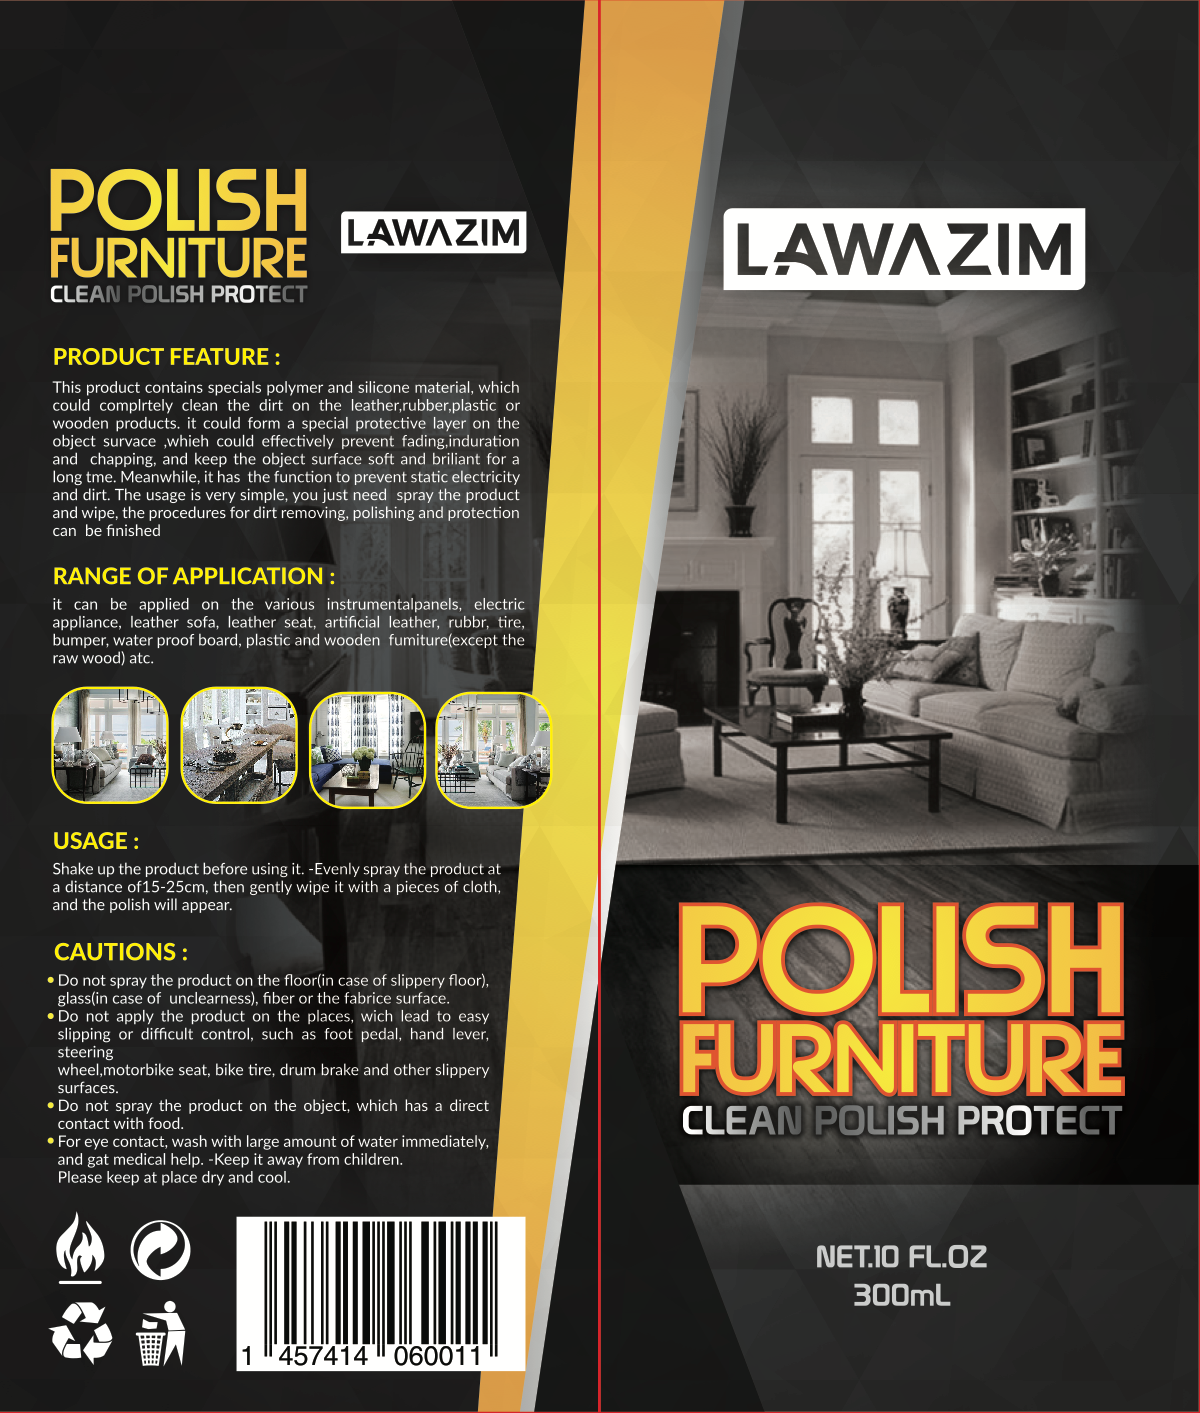 Can design for Cleaning & Polishing Sprays & Party Design Can